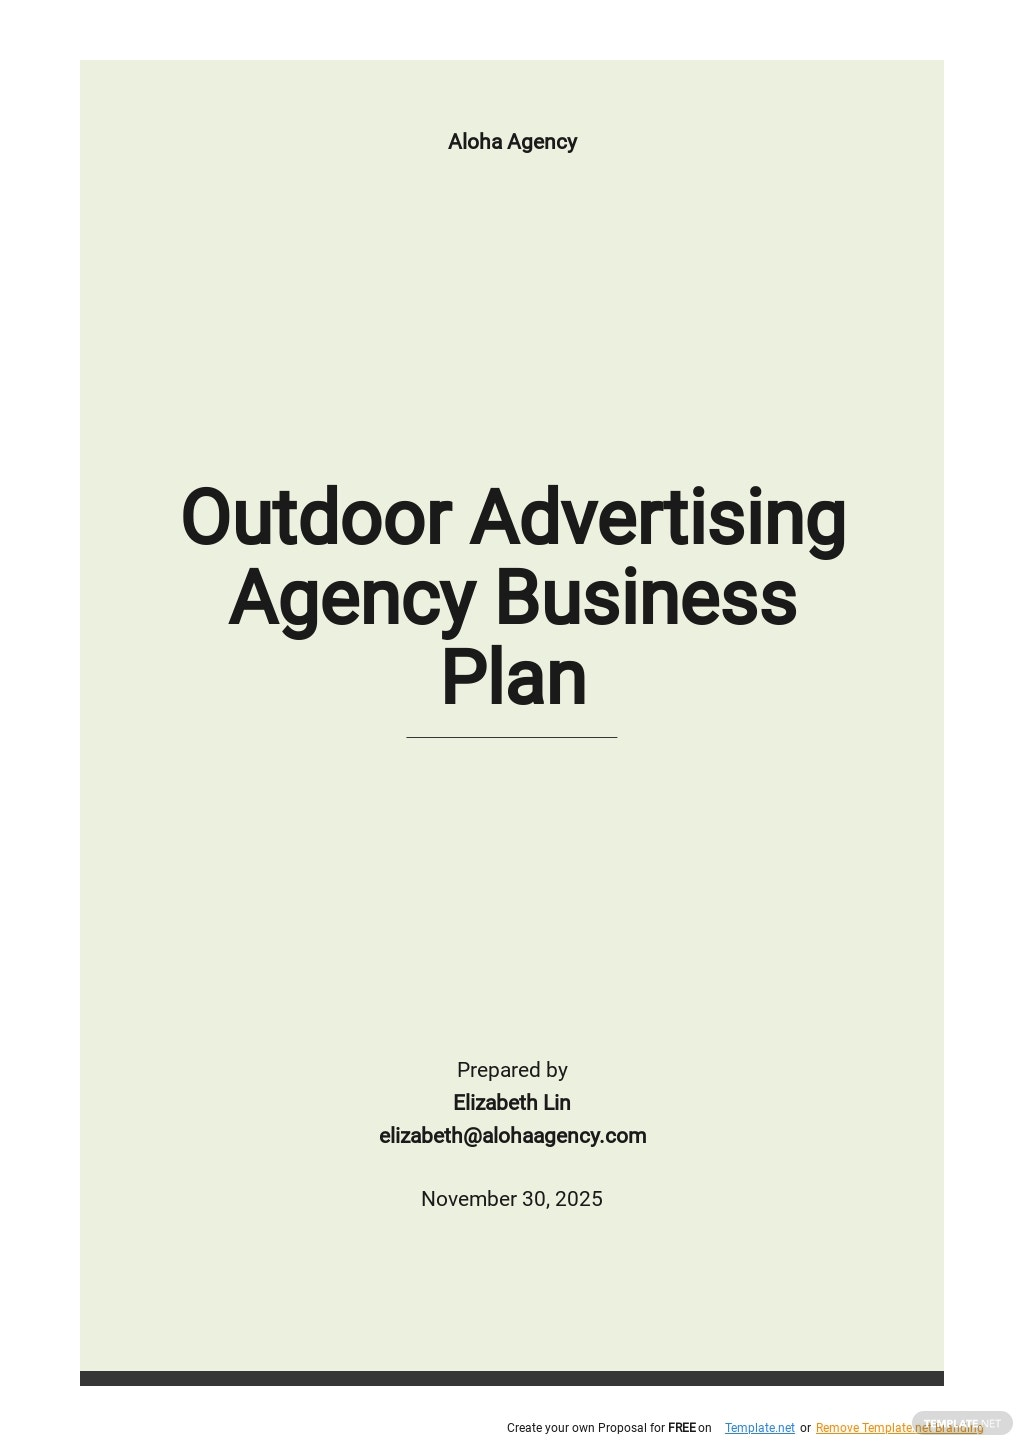 Outdoor Advertising Agency Business Plan Template.jpe